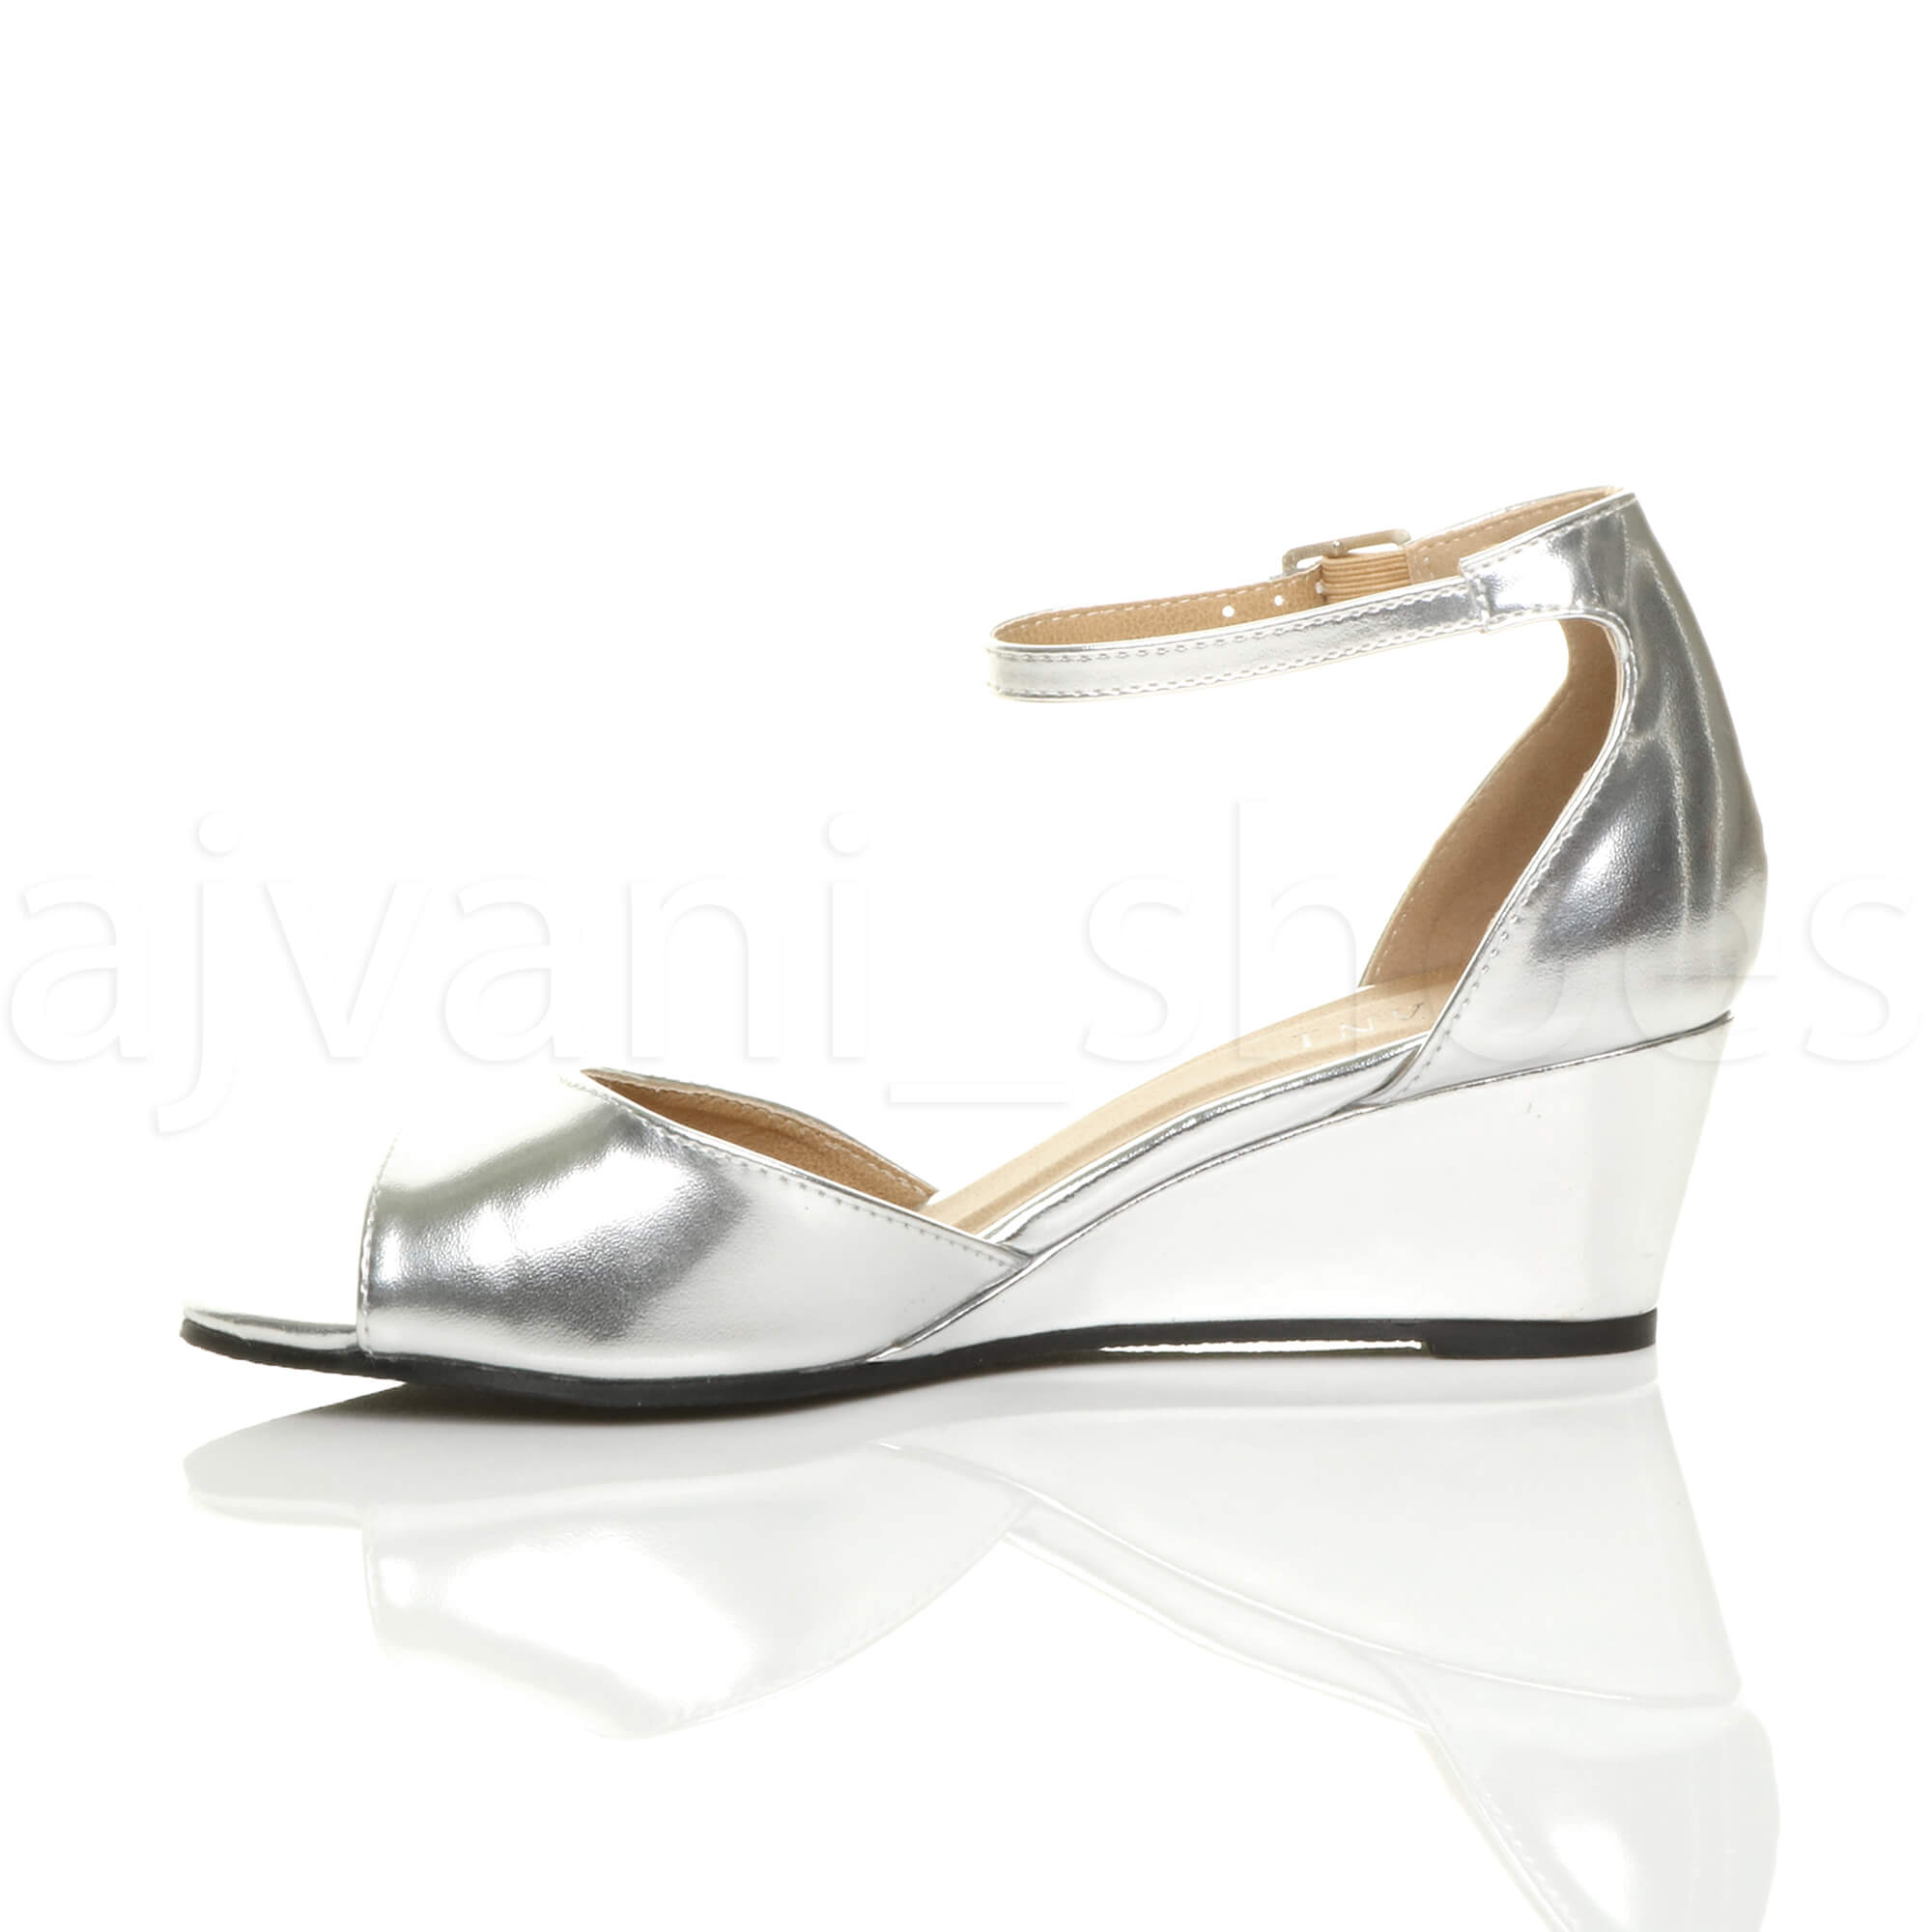 WOMENS LADIES LOW MID WEDGE HEEL ANKLE STRAP SMART CASUAL EVENING SANDALS SIZE